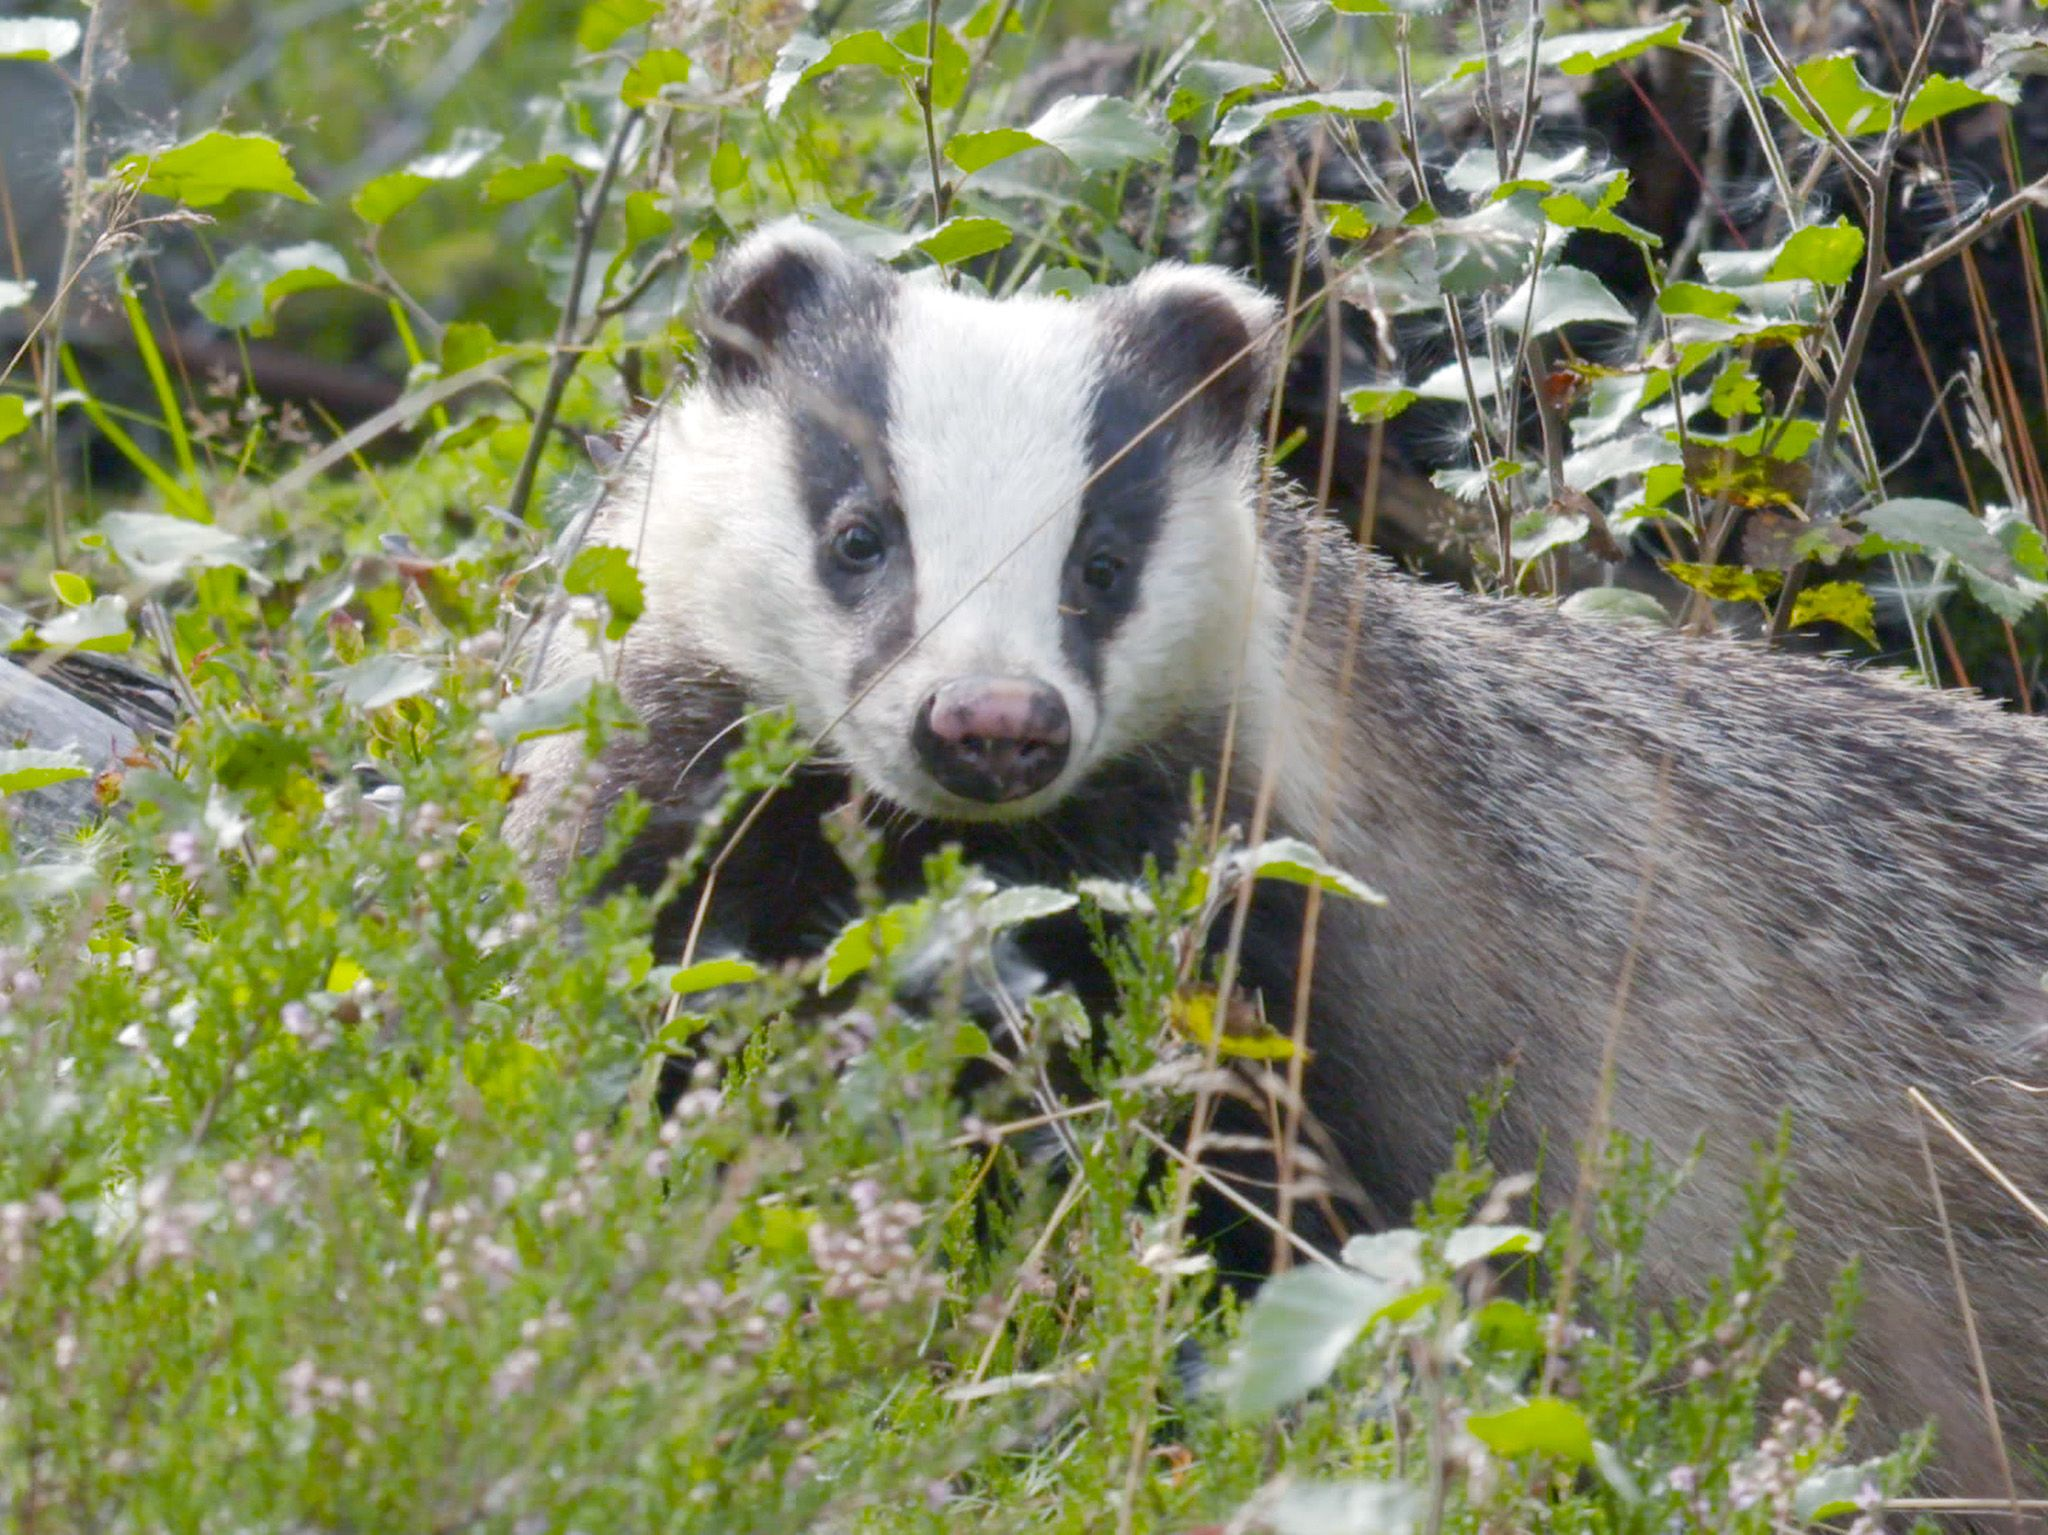 Badger in the bushes.  This image is from Wild Scandinavia. [Photo of the day - August 2019]